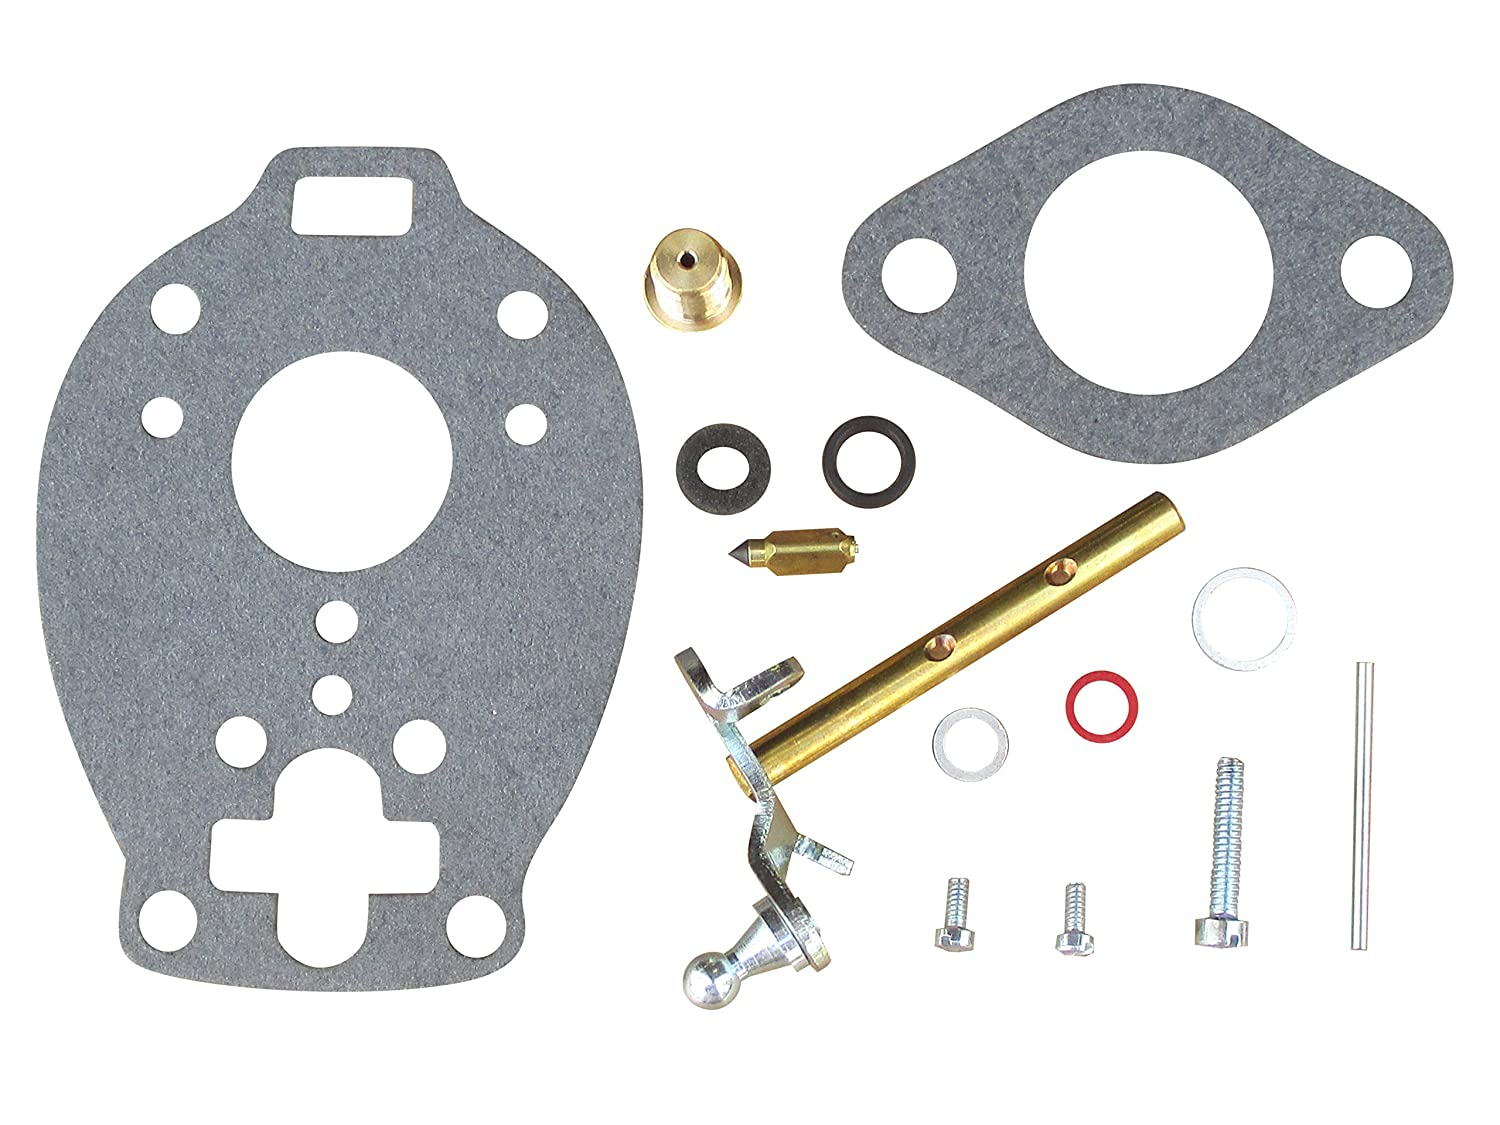 Hamiltonbobs Premium Quality Marvel Schebler Carburetor Minor Rebuild Kit Ford... supplier